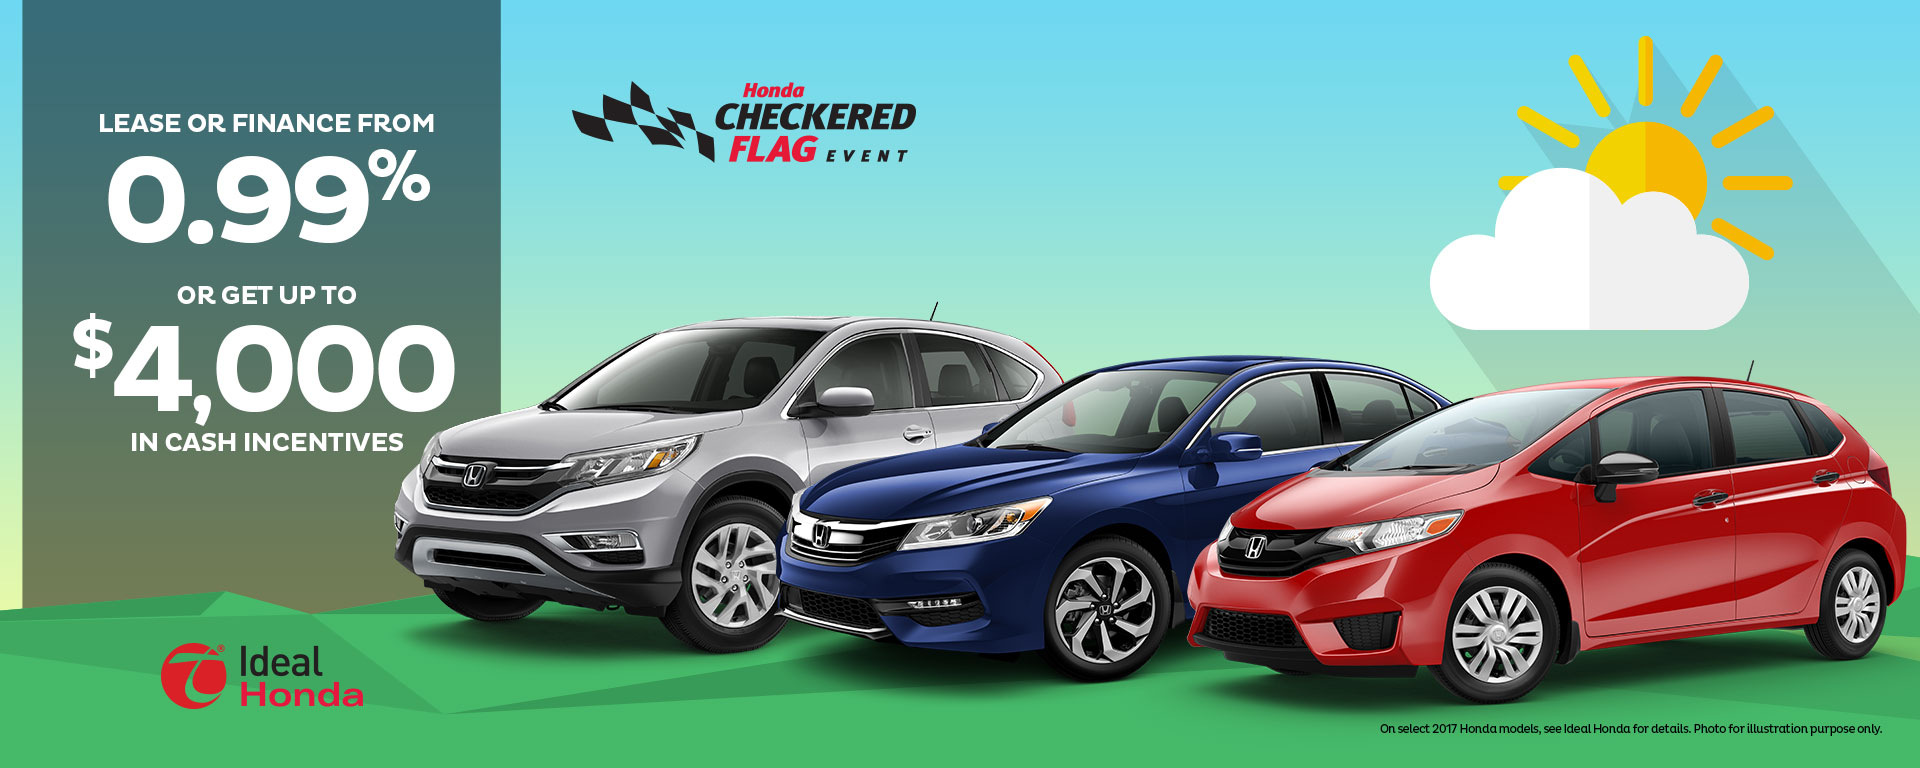 Lease or finance from 0.99% or get up to $4000 in cash incentives